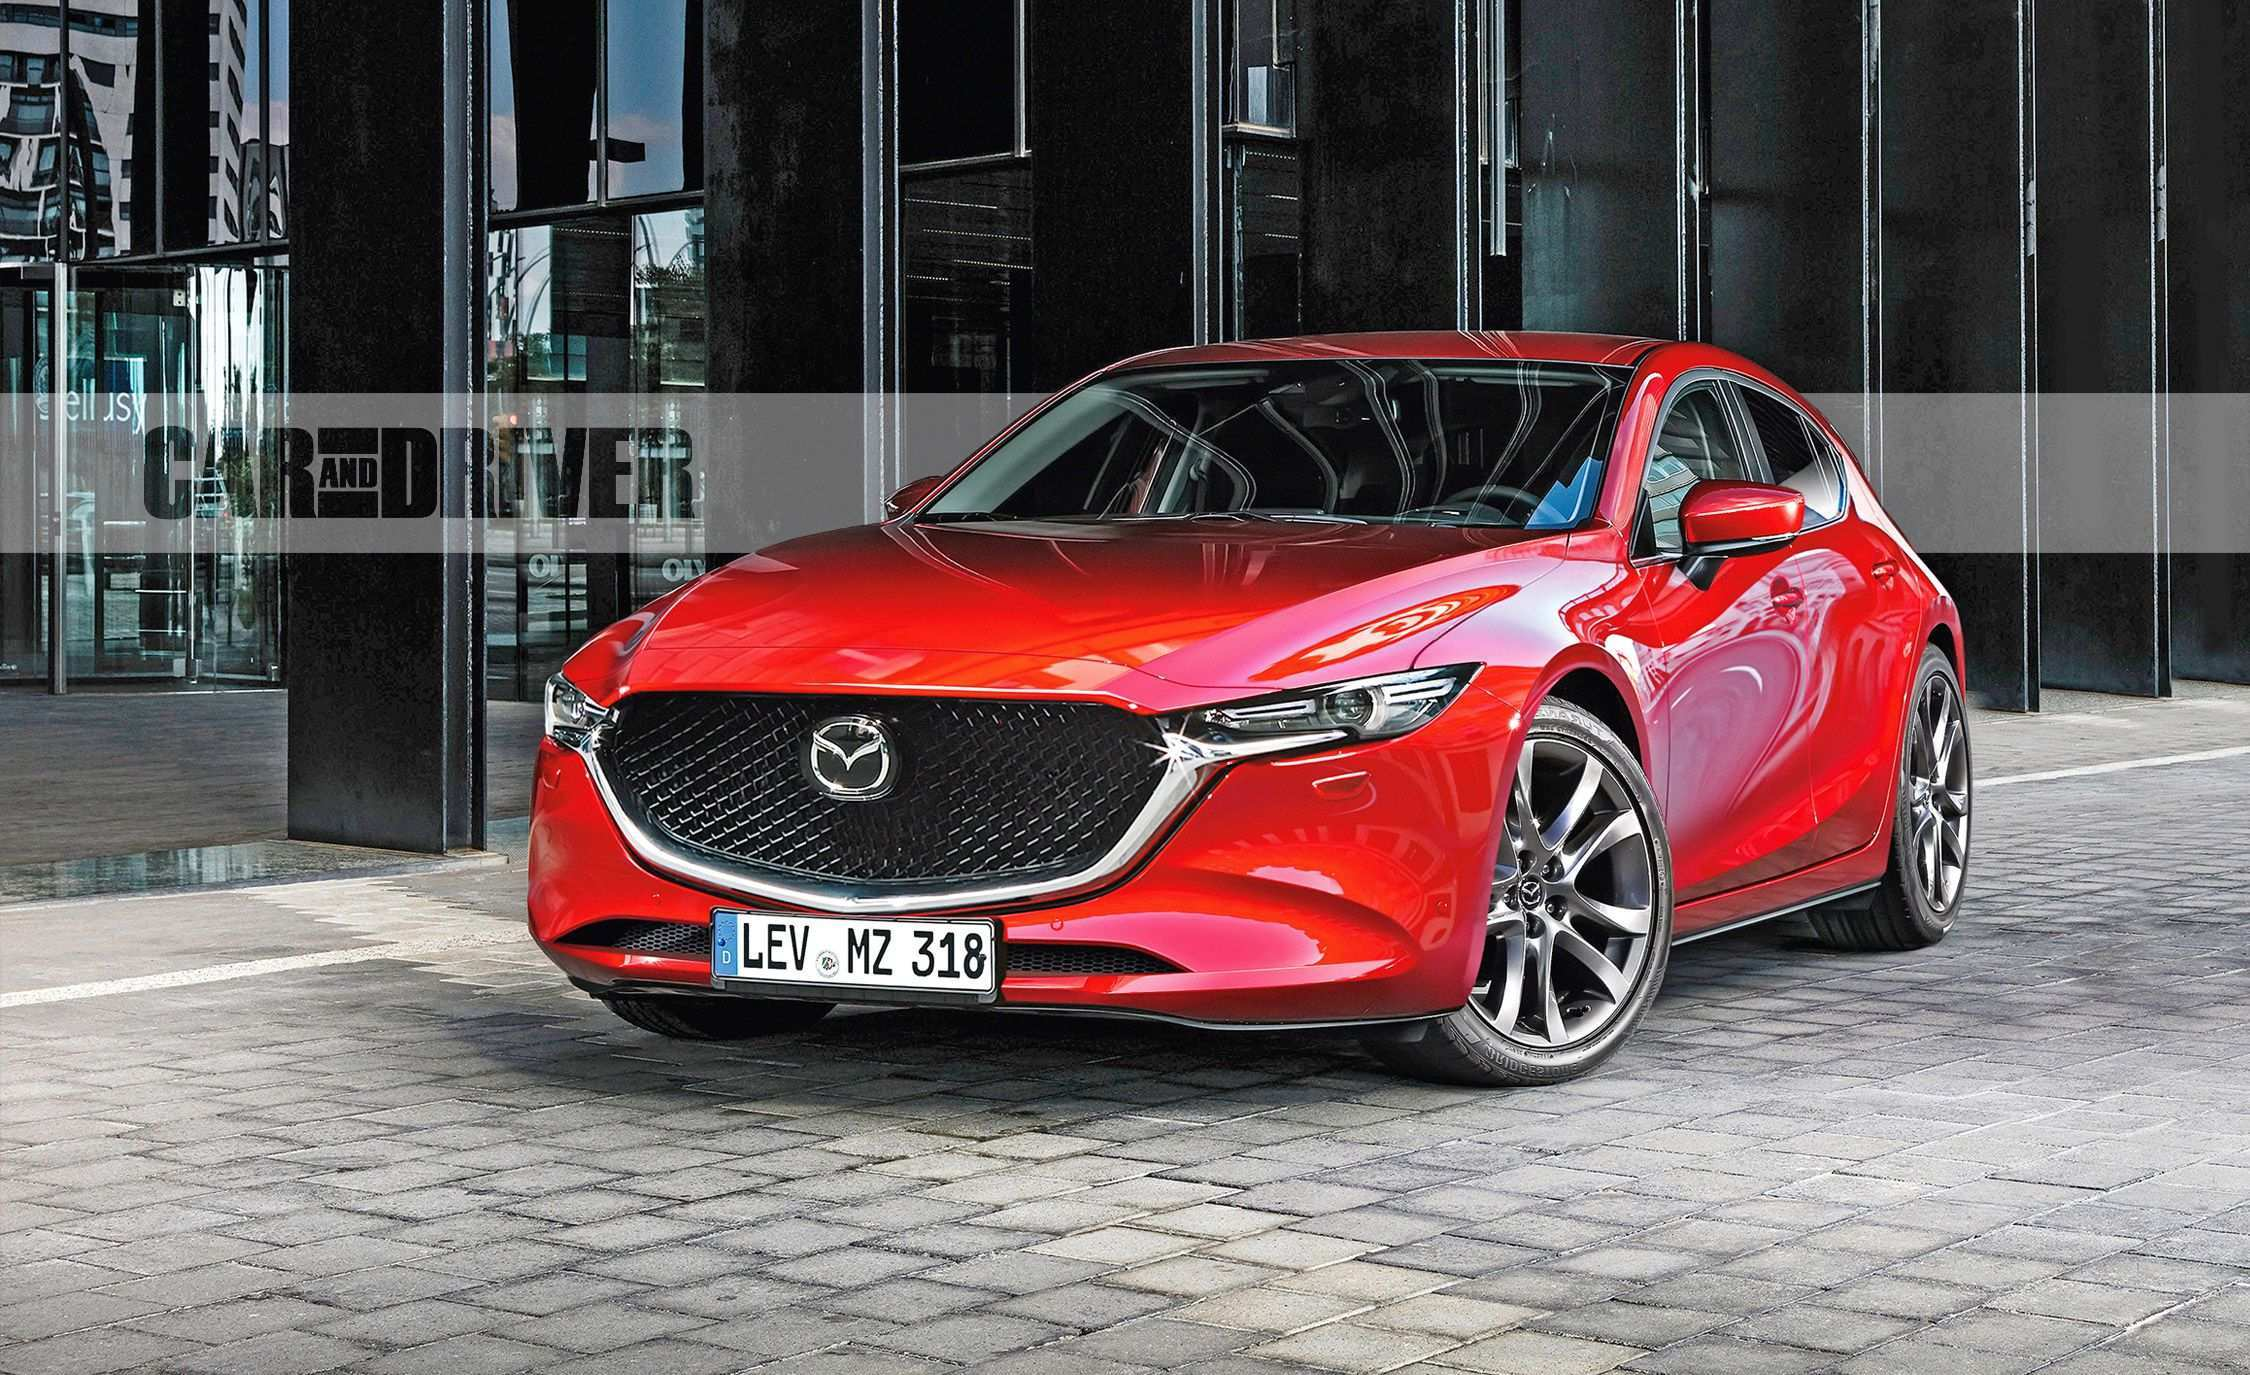 38 The 2020 Mazda 3 Photos with 2020 Mazda 3